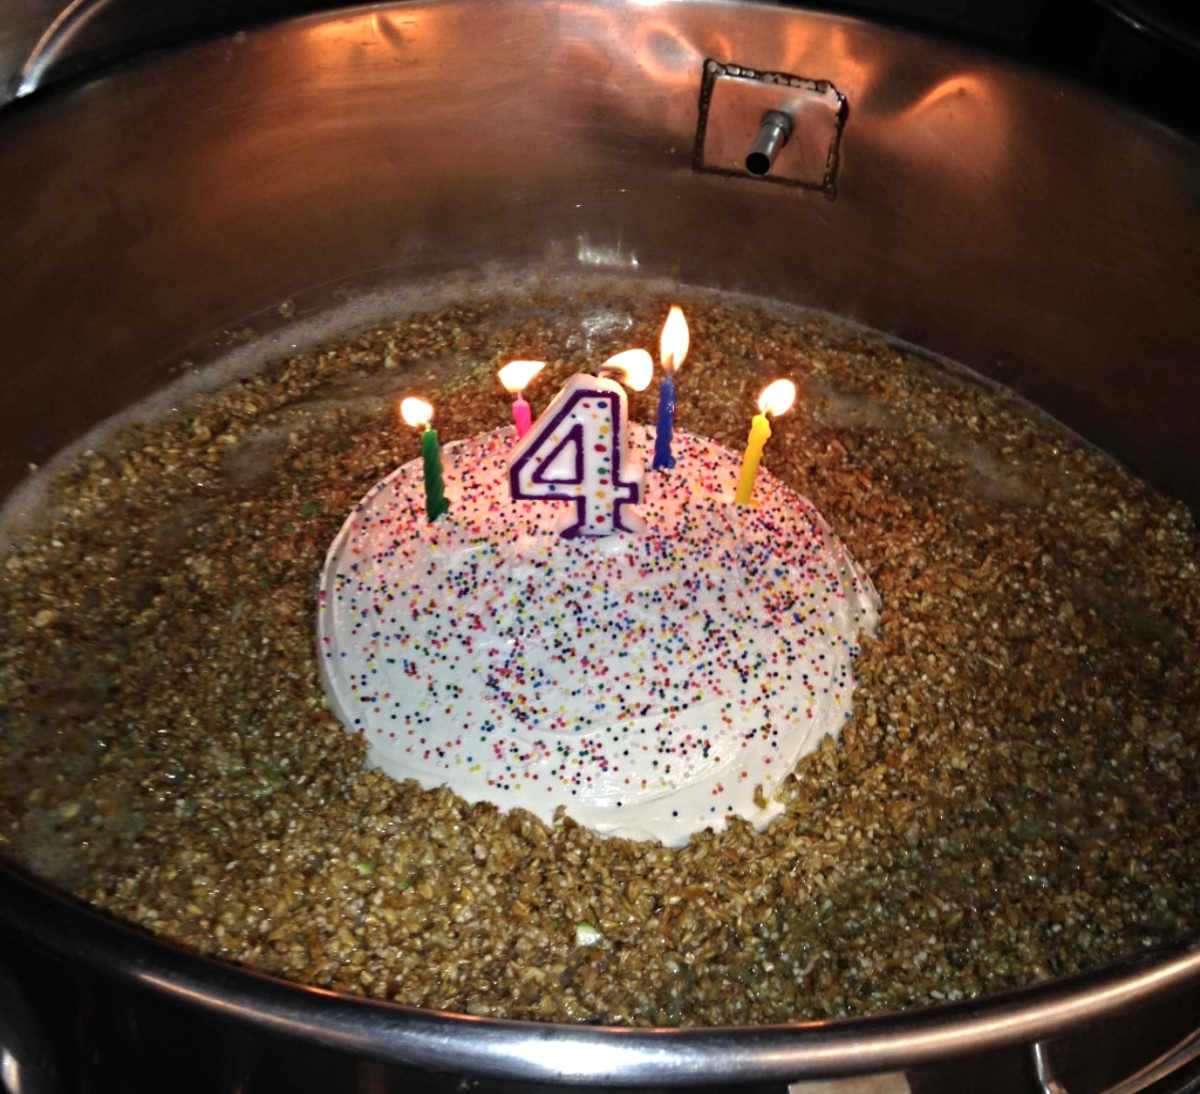 Birthday Cake Beer in Mash